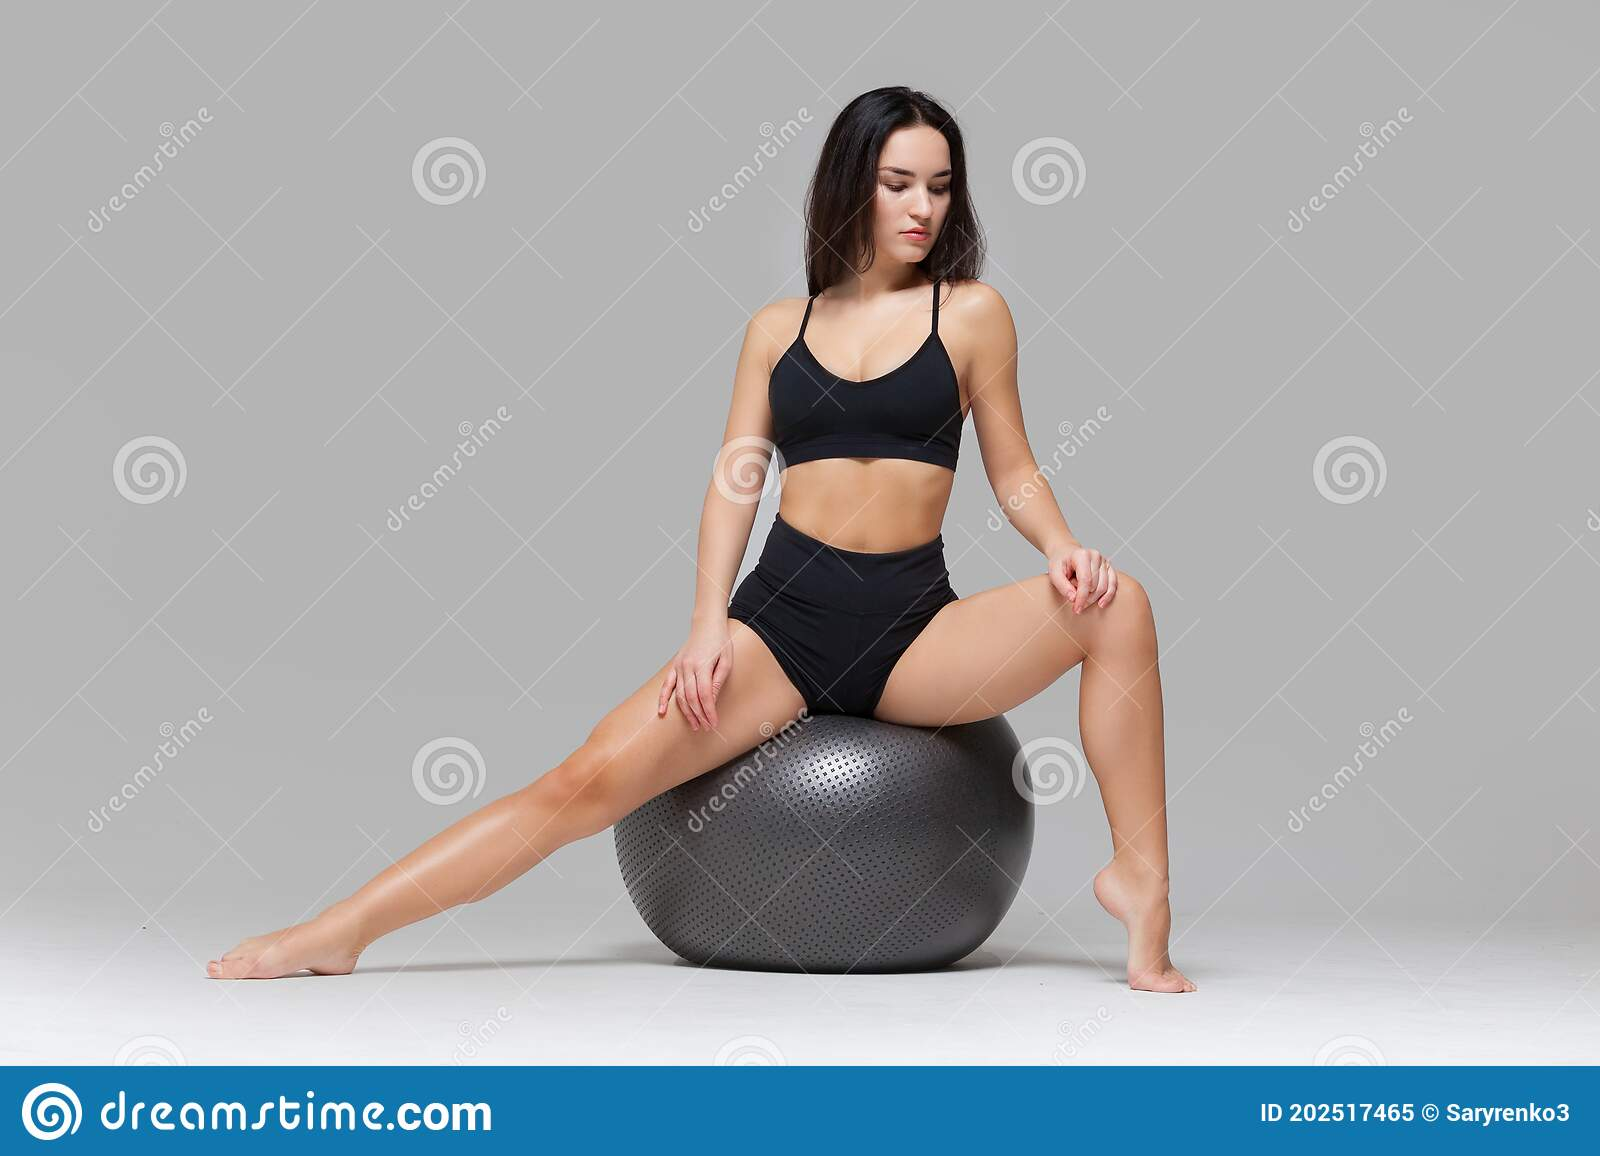 Stretching pictures ball Scrotum stretching